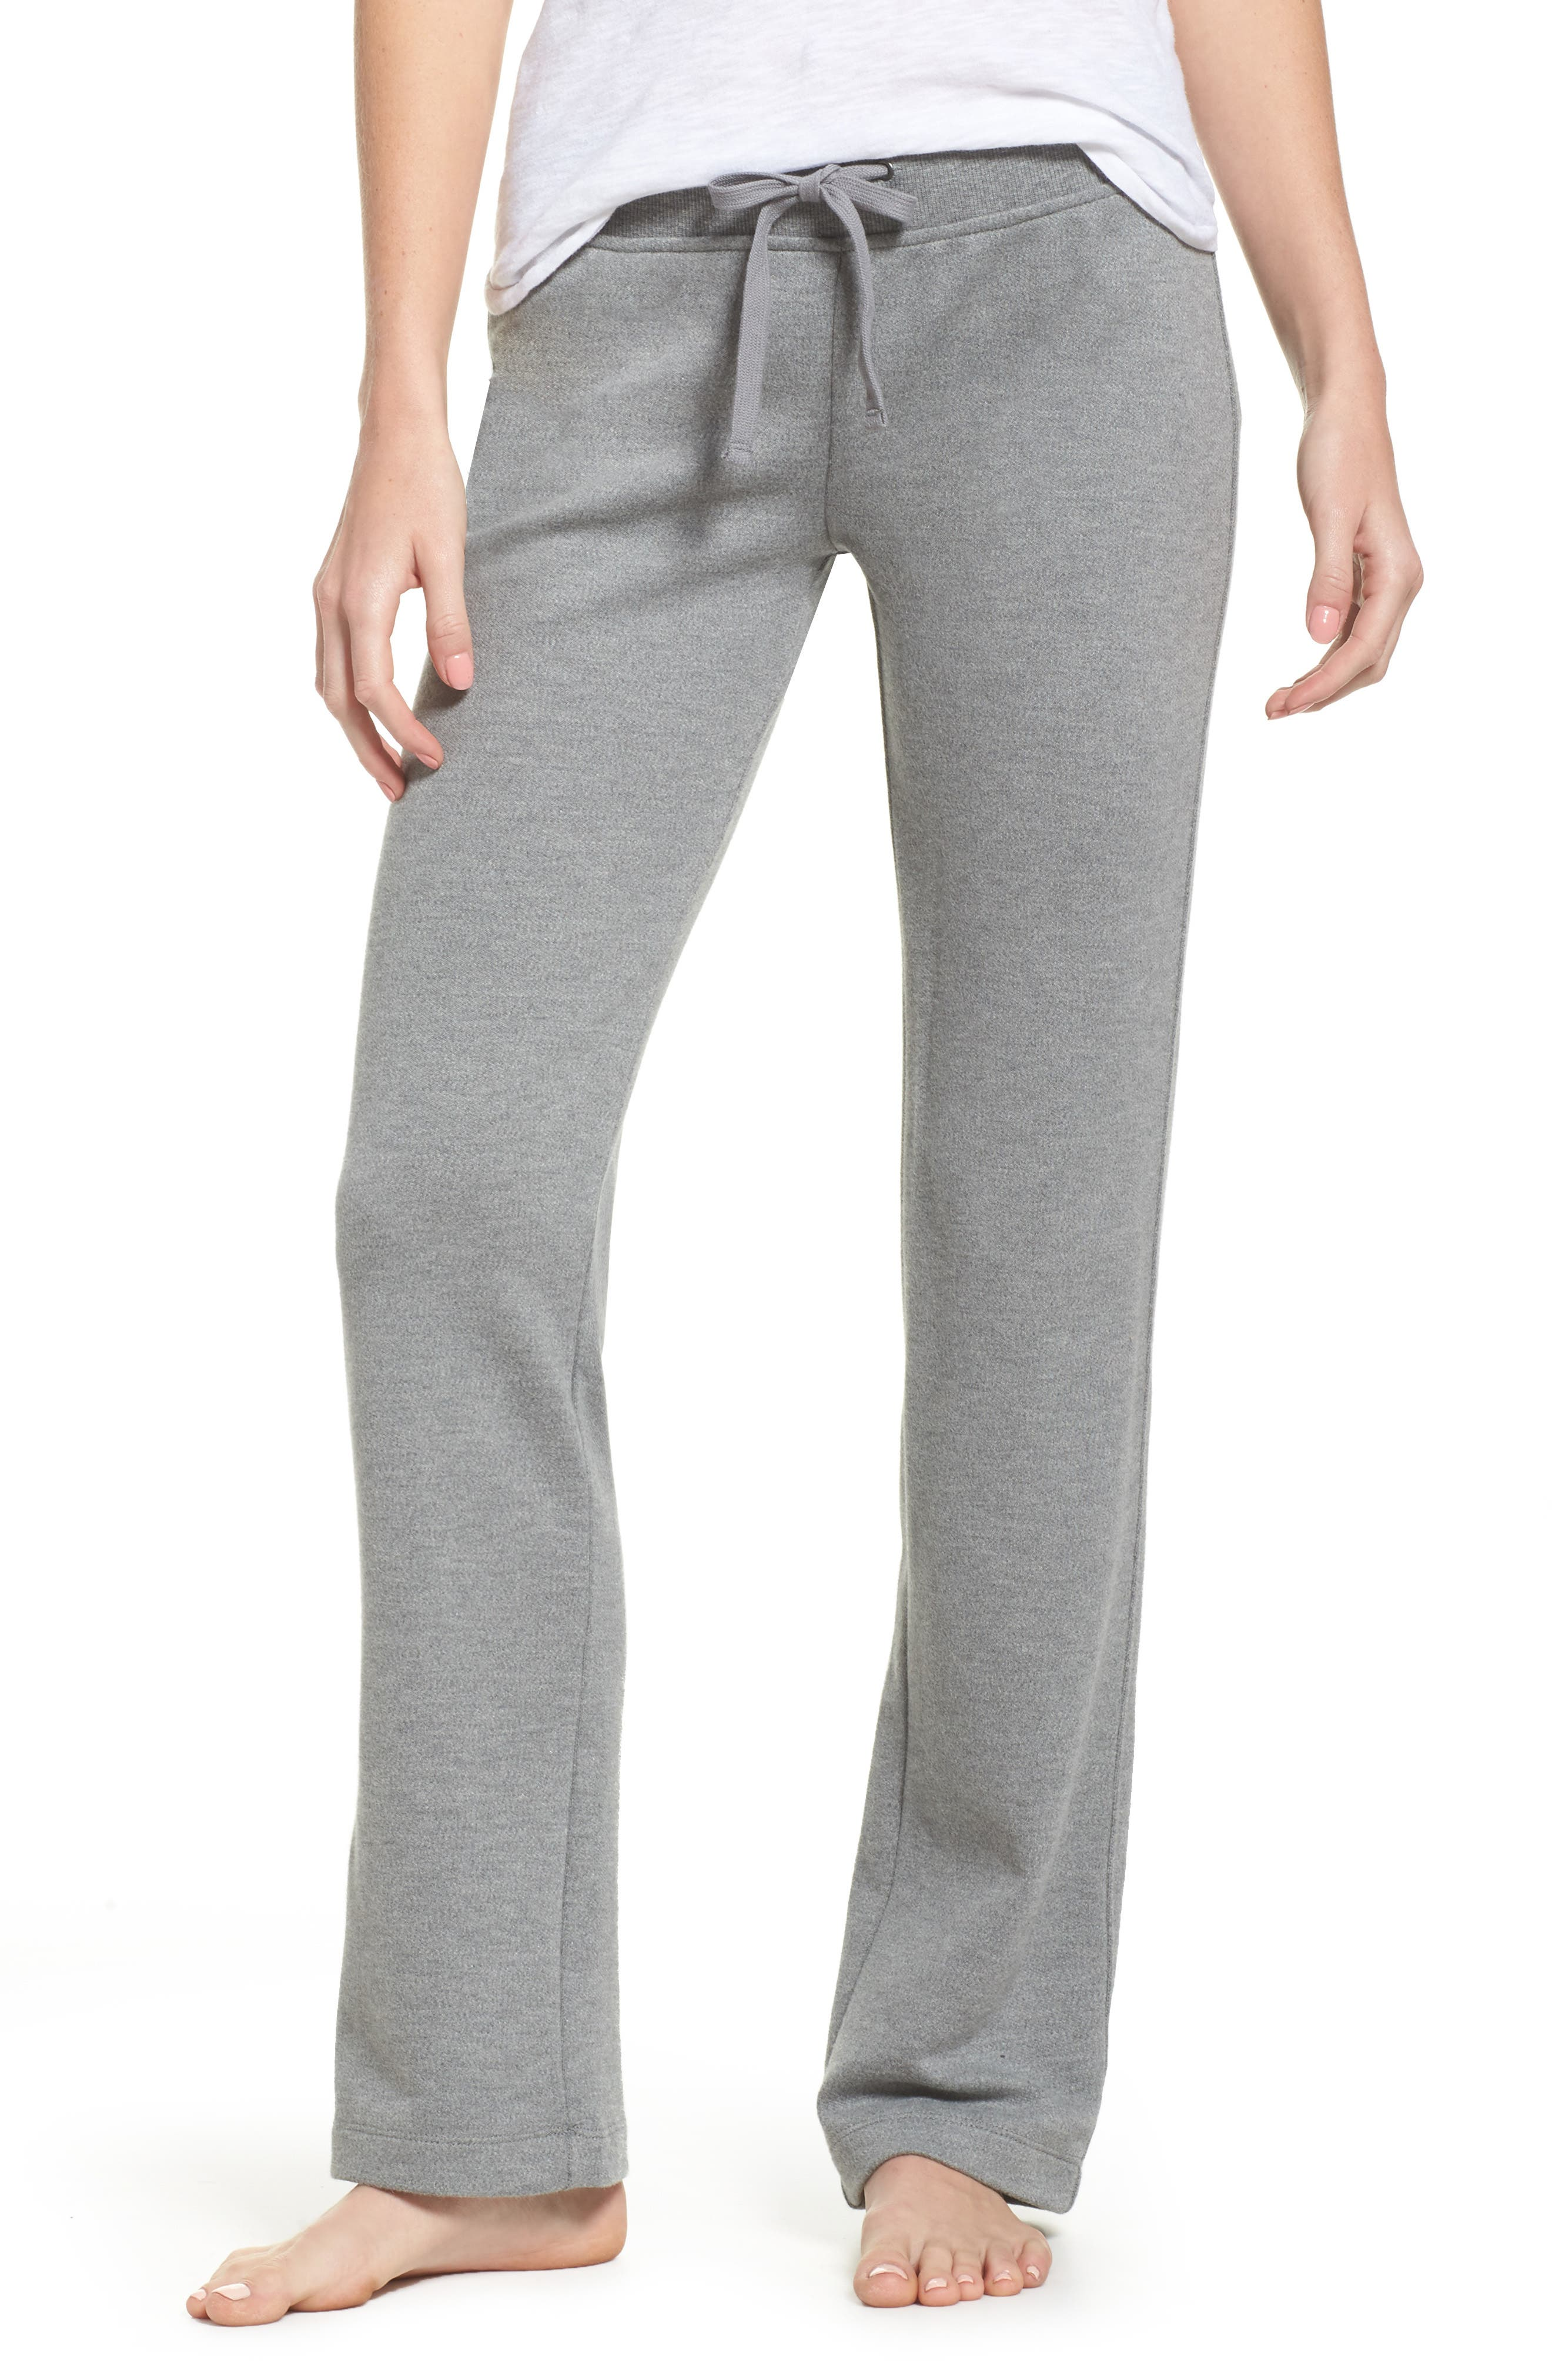 Penny Lounge Pants,                         Main,                         color, Grey Heather